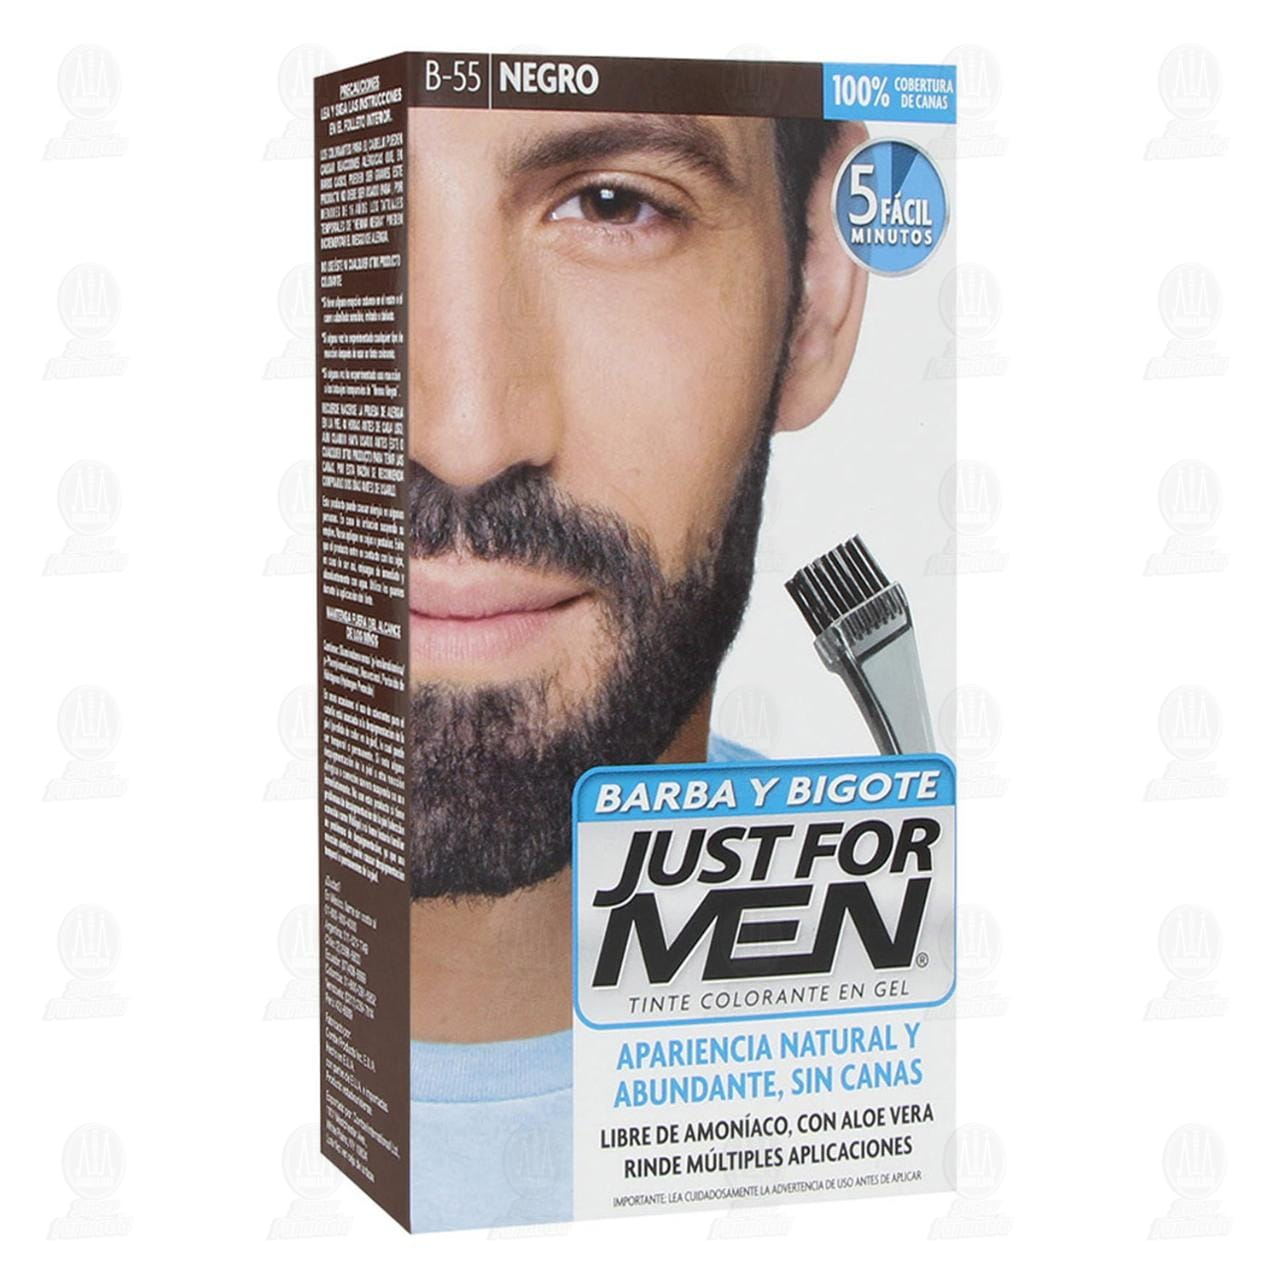 Tinte en Gel Just For Men Apariencia Natural y Abundante Sin Canas Negro, 6 pzas./28.4 gr.